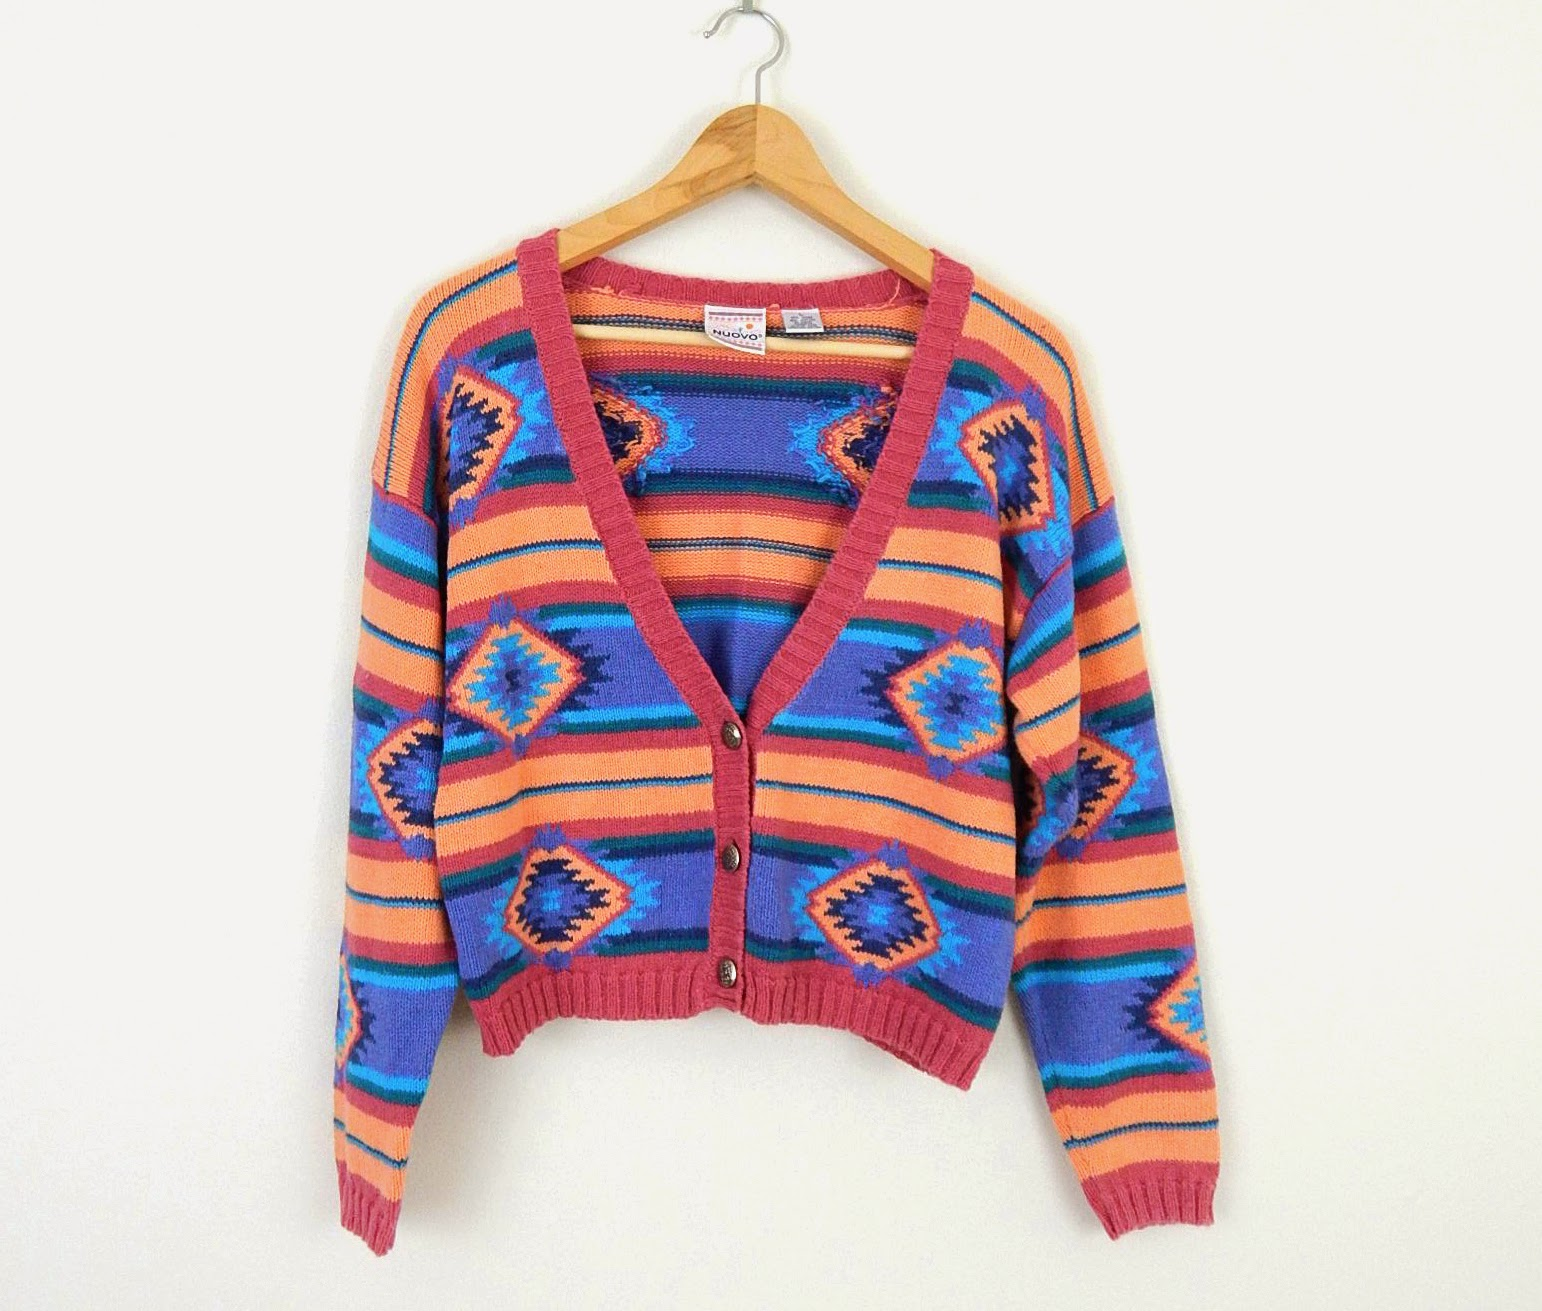 https://www.etsy.com/listing/164458317/vintage-womens-sweater-colorful-aztec?